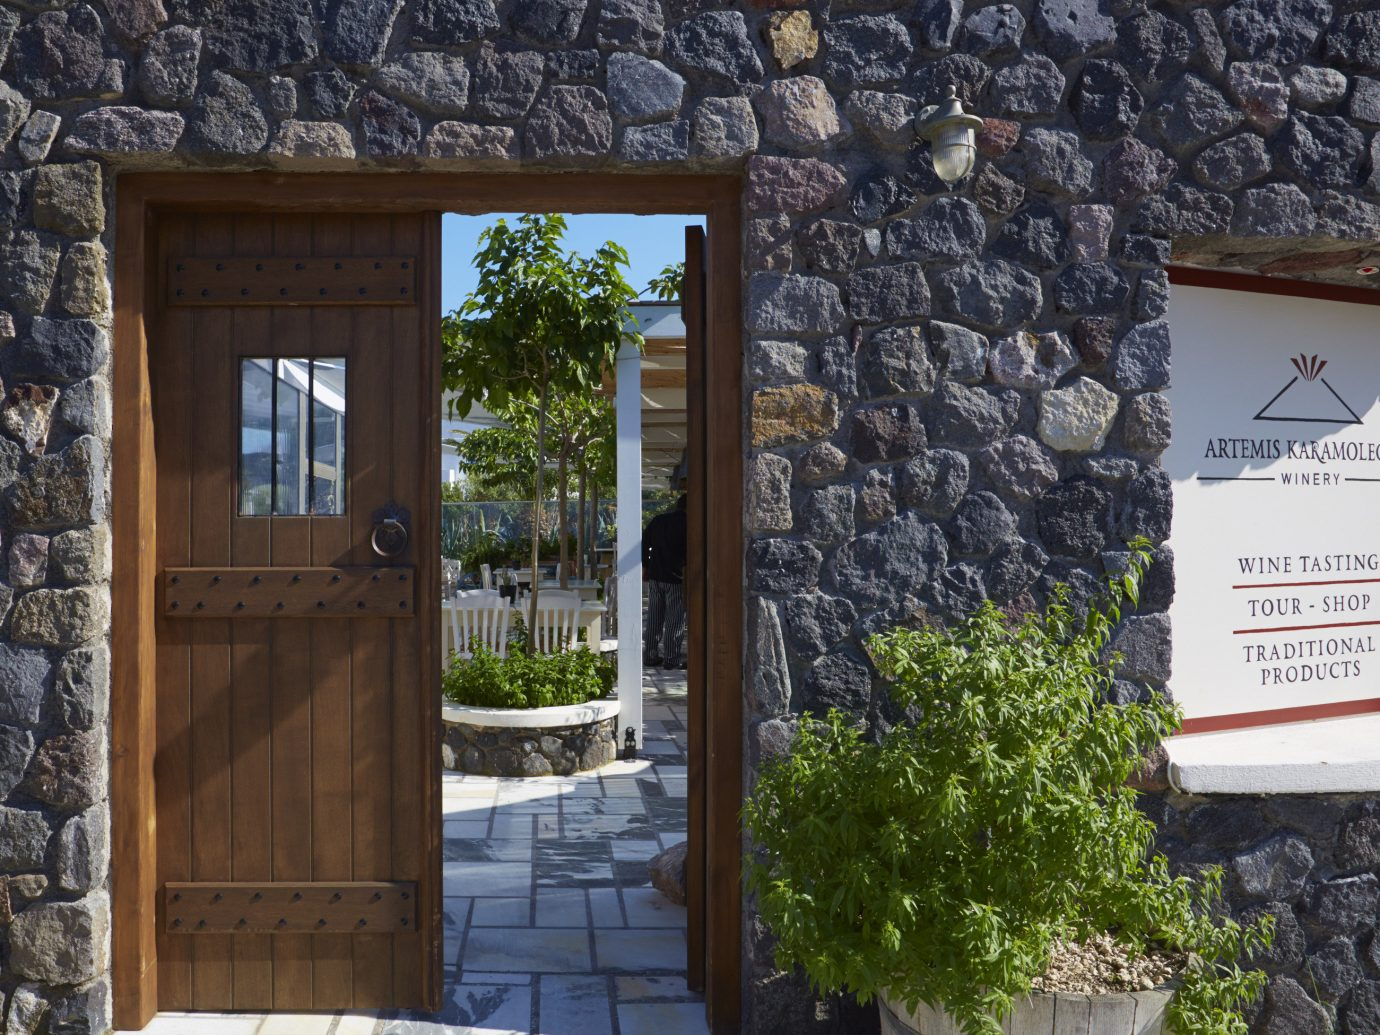 Trip Ideas building stone outdoor brick rock wall house home window facade door stone wall real estate tree cottage old